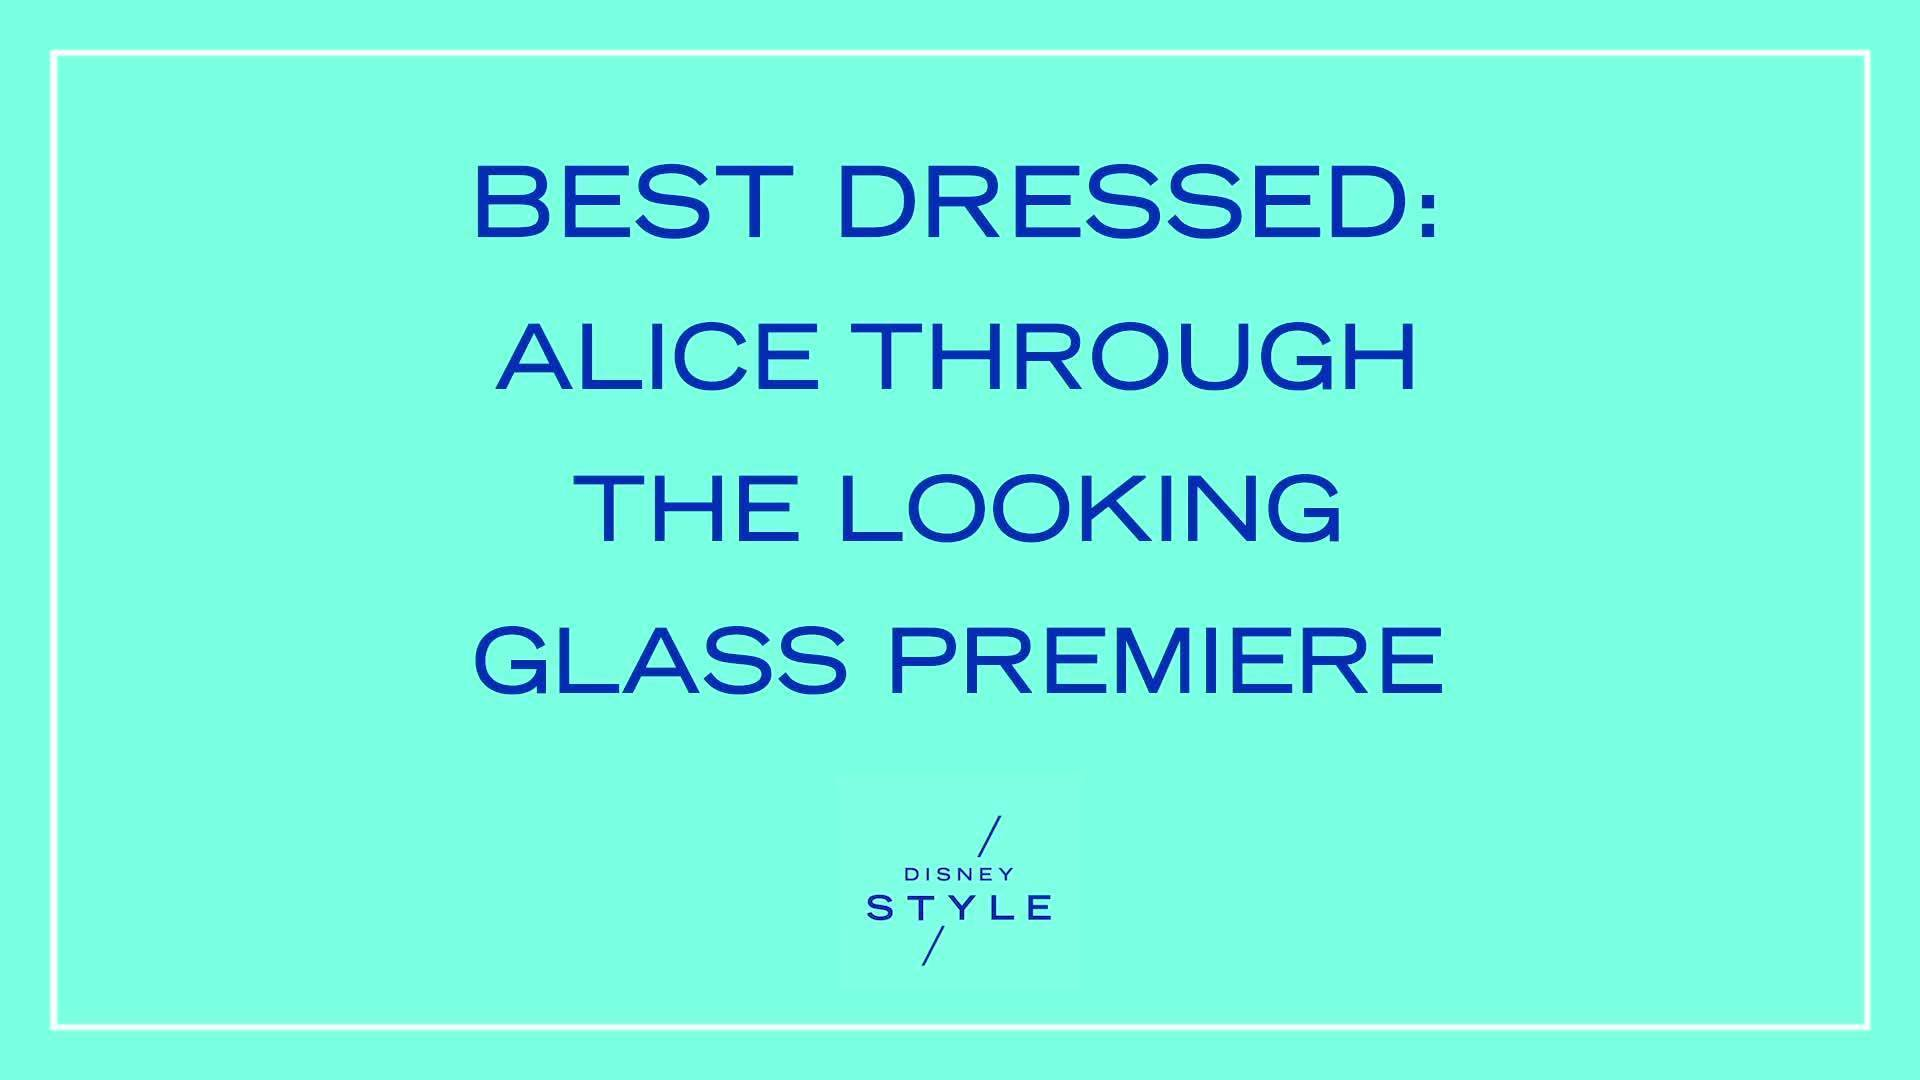 Best Dressed: Alice Through the Looking Glass Premiere